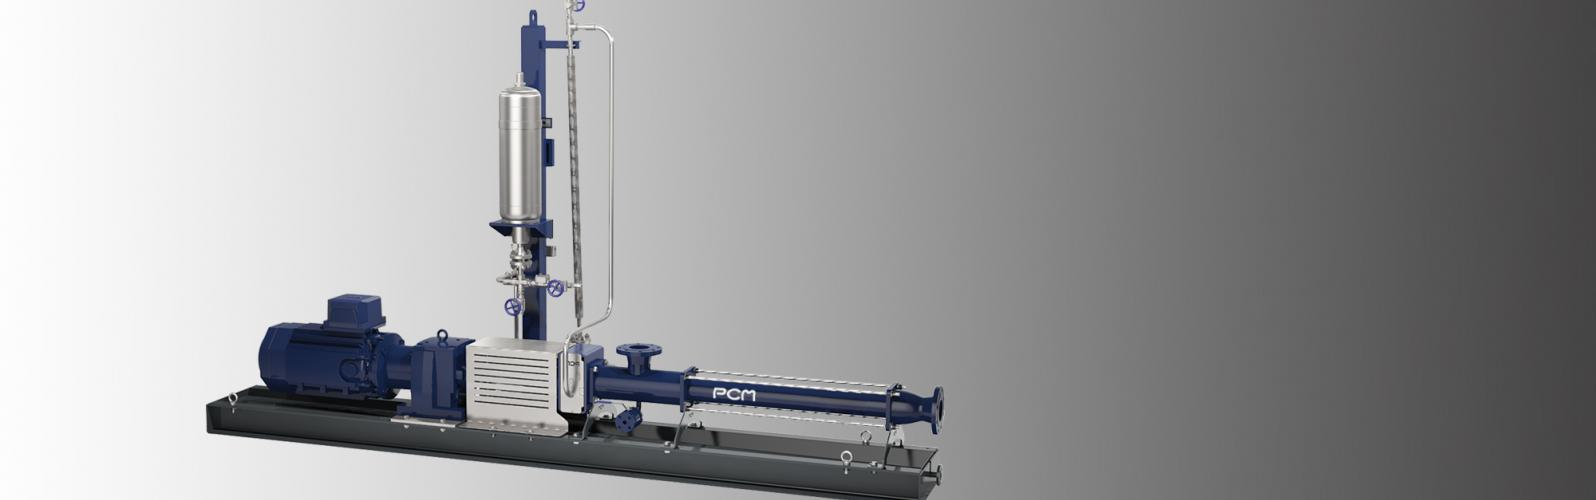 PCM a leading provider of pumping solutions for the oil and gas industry